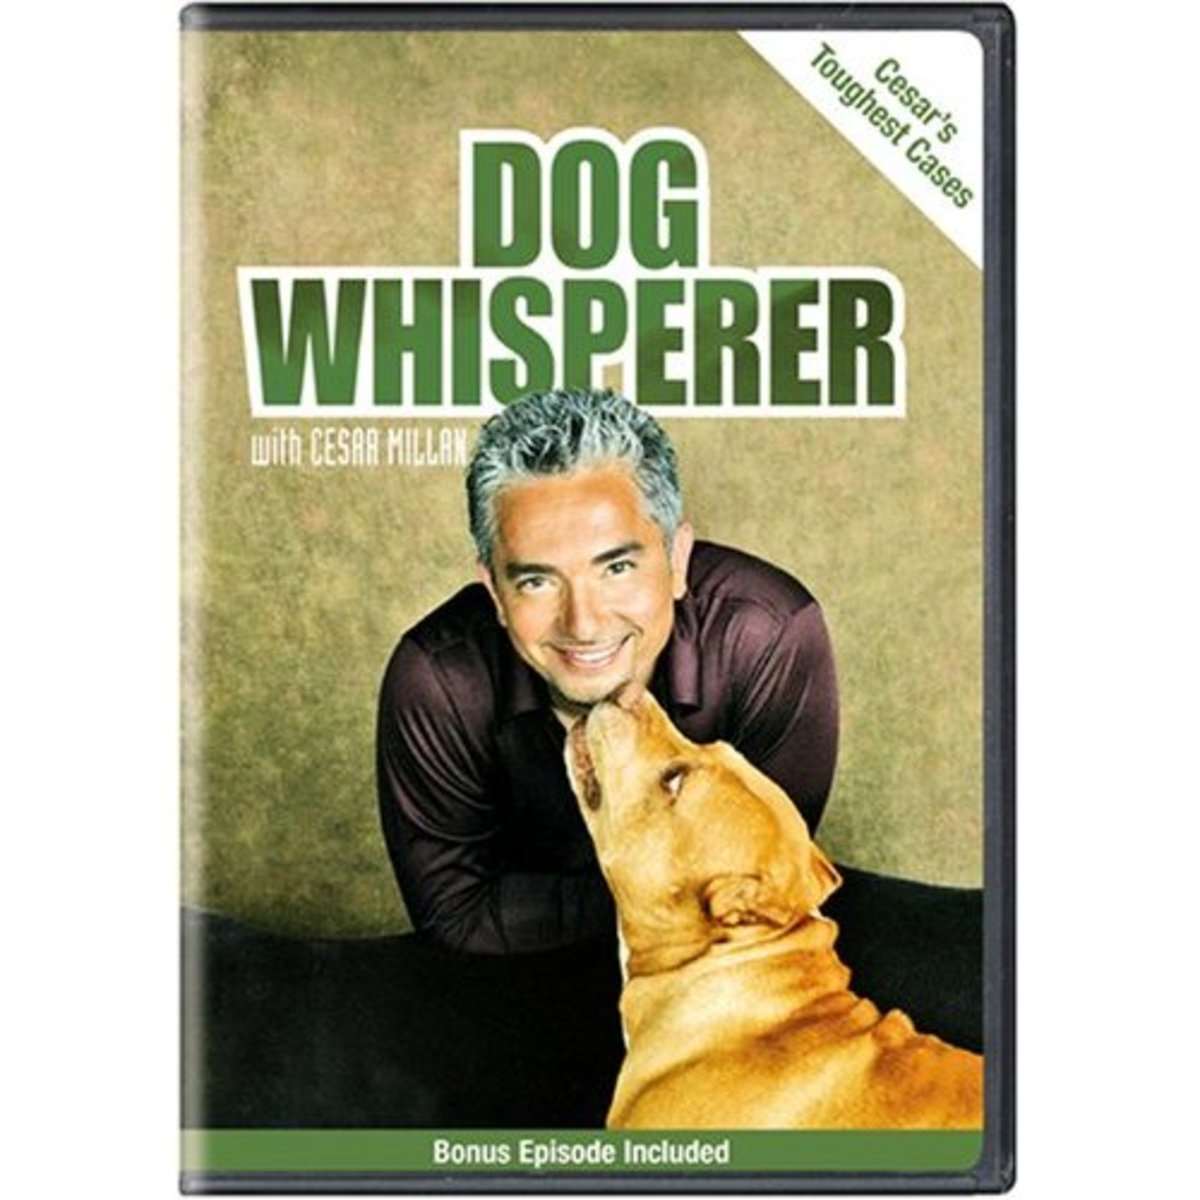 Cesar Millan, The Dog Whisperer's Most Discussed Topics